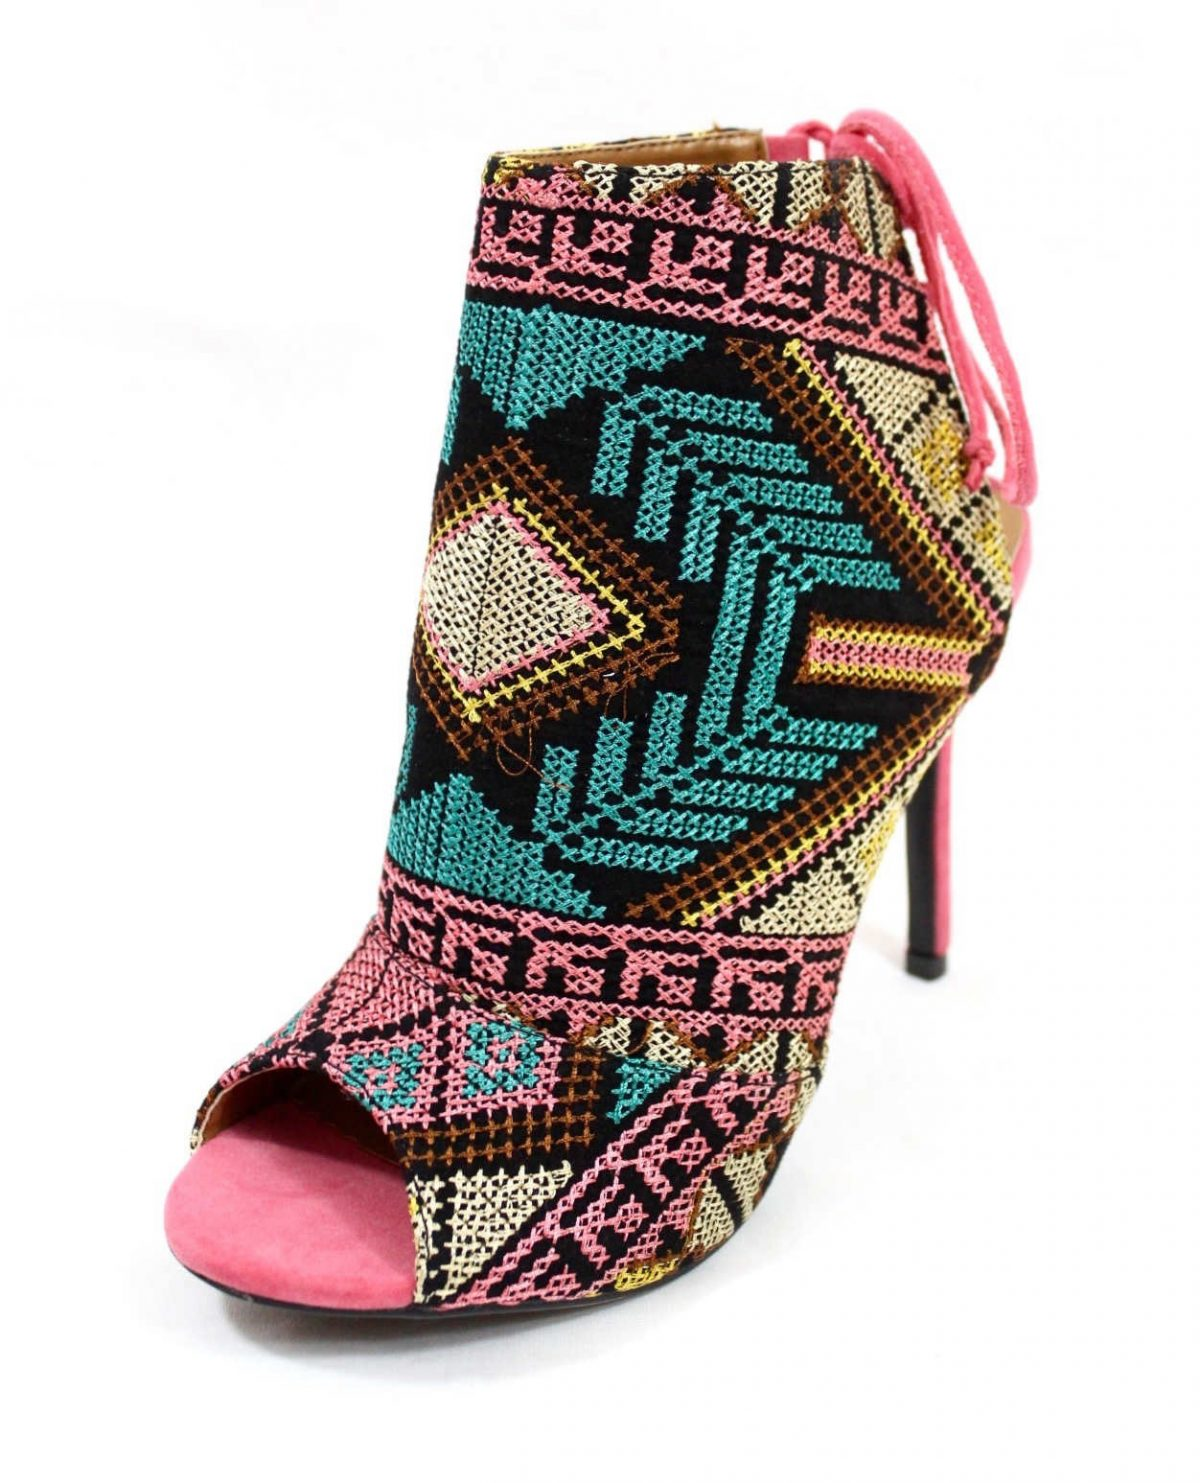 Shoe Republic Calista embroidered Stiletto Open Toe High Pink Booties-4761